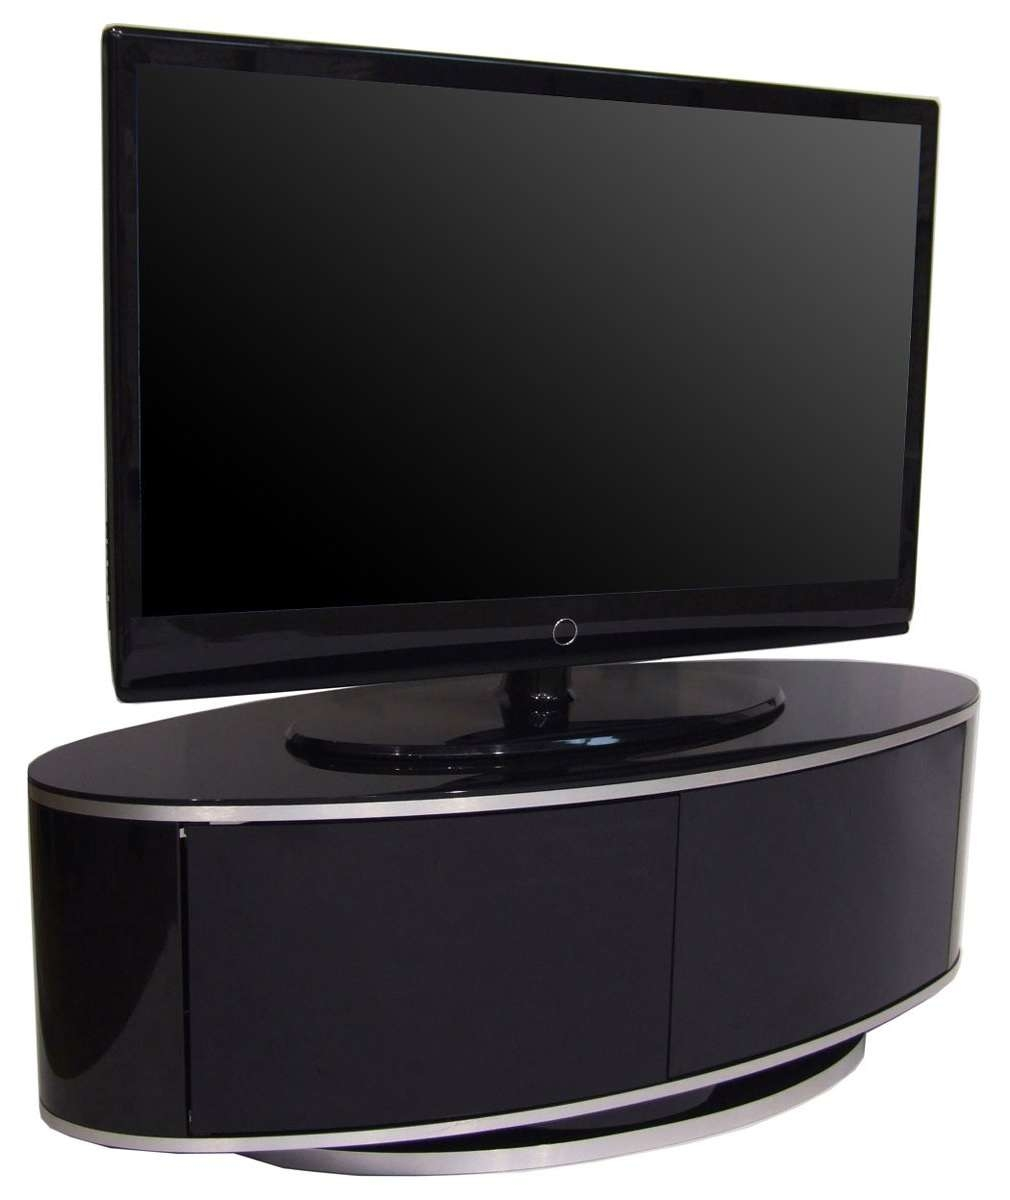 Luna High Gloss Black Oval Tv Cabinet With Regard To Shiny Black Tv Stands (View 9 of 15)